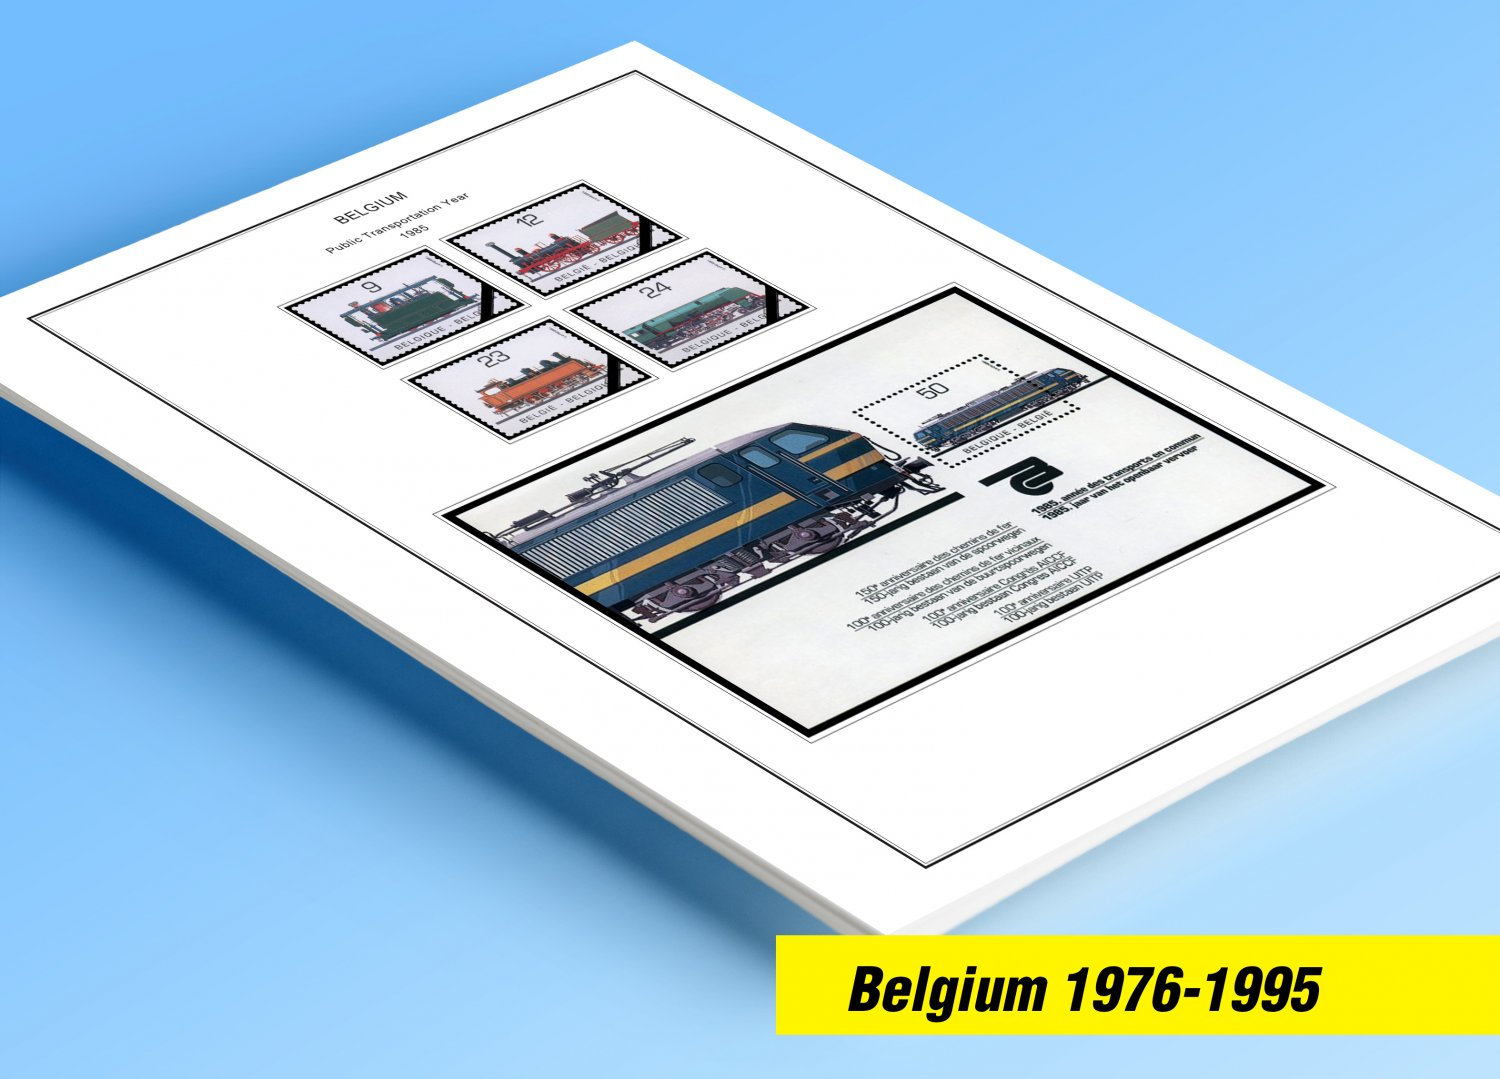 COLOR PRINTED BELGIUM 1976-1995 STAMP ALBUM PAGES (68 illustrated pages)